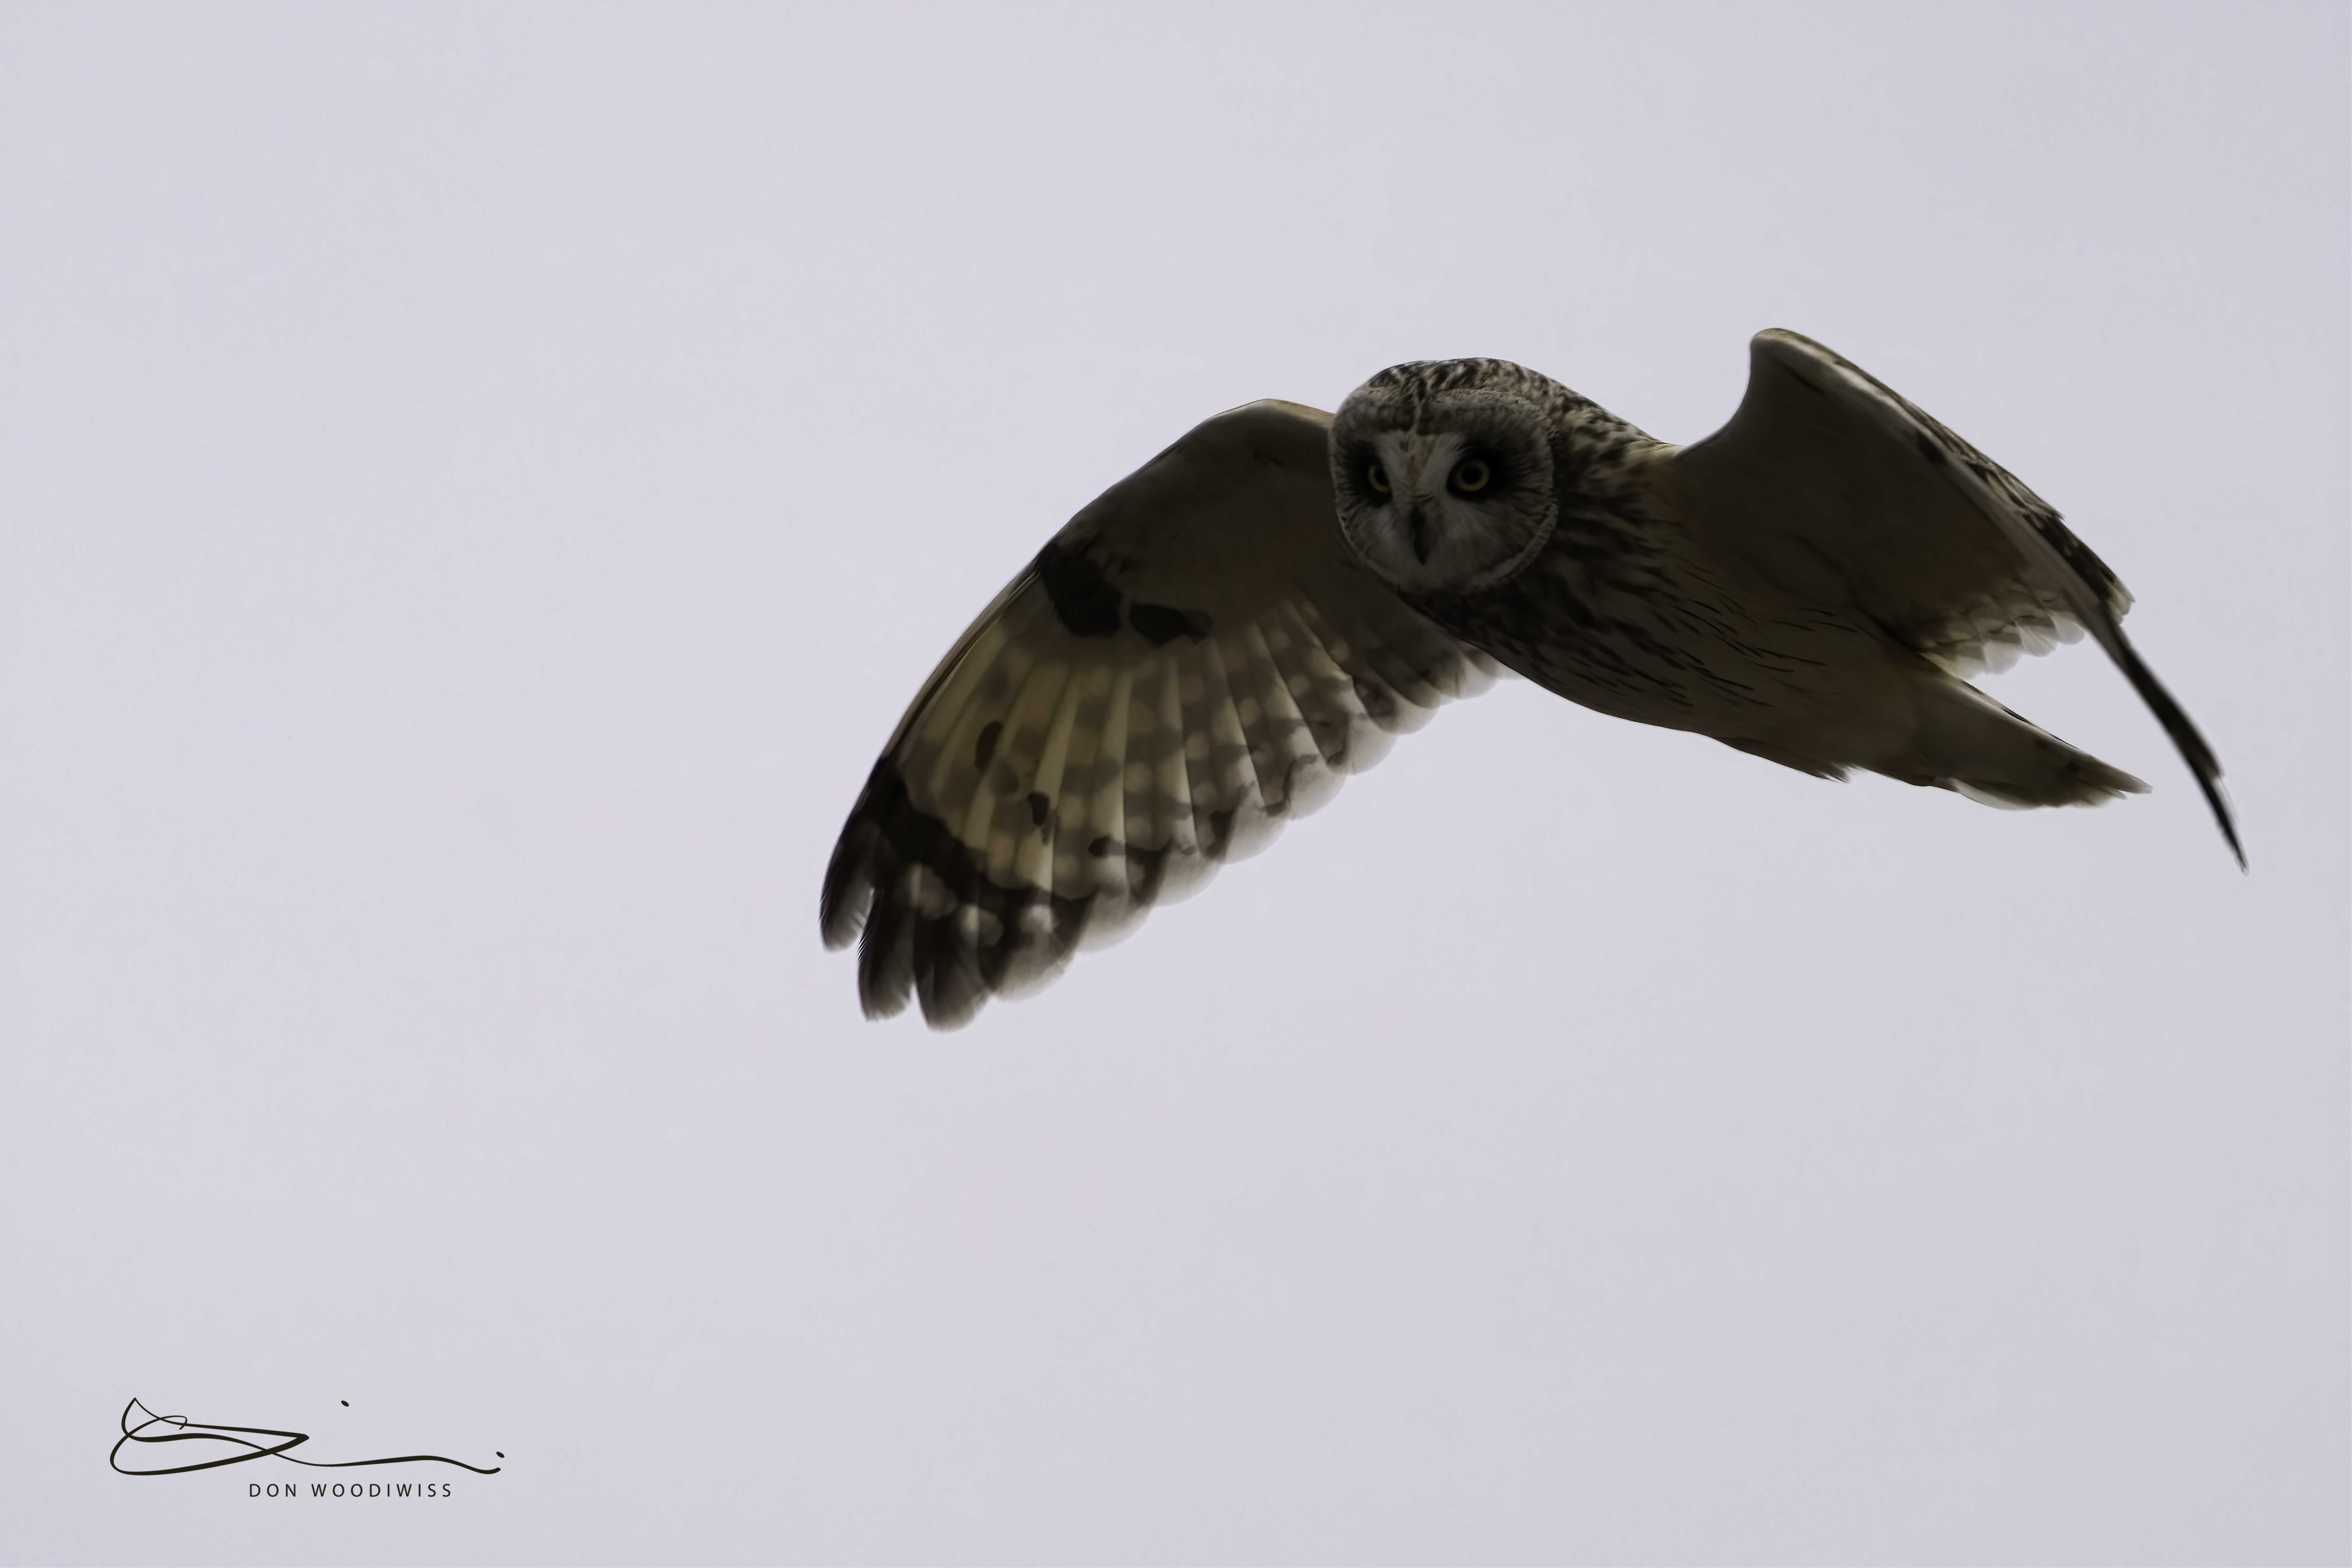 Don Woodiwiss-Amherst Island-Short Eared Owl-Photographer